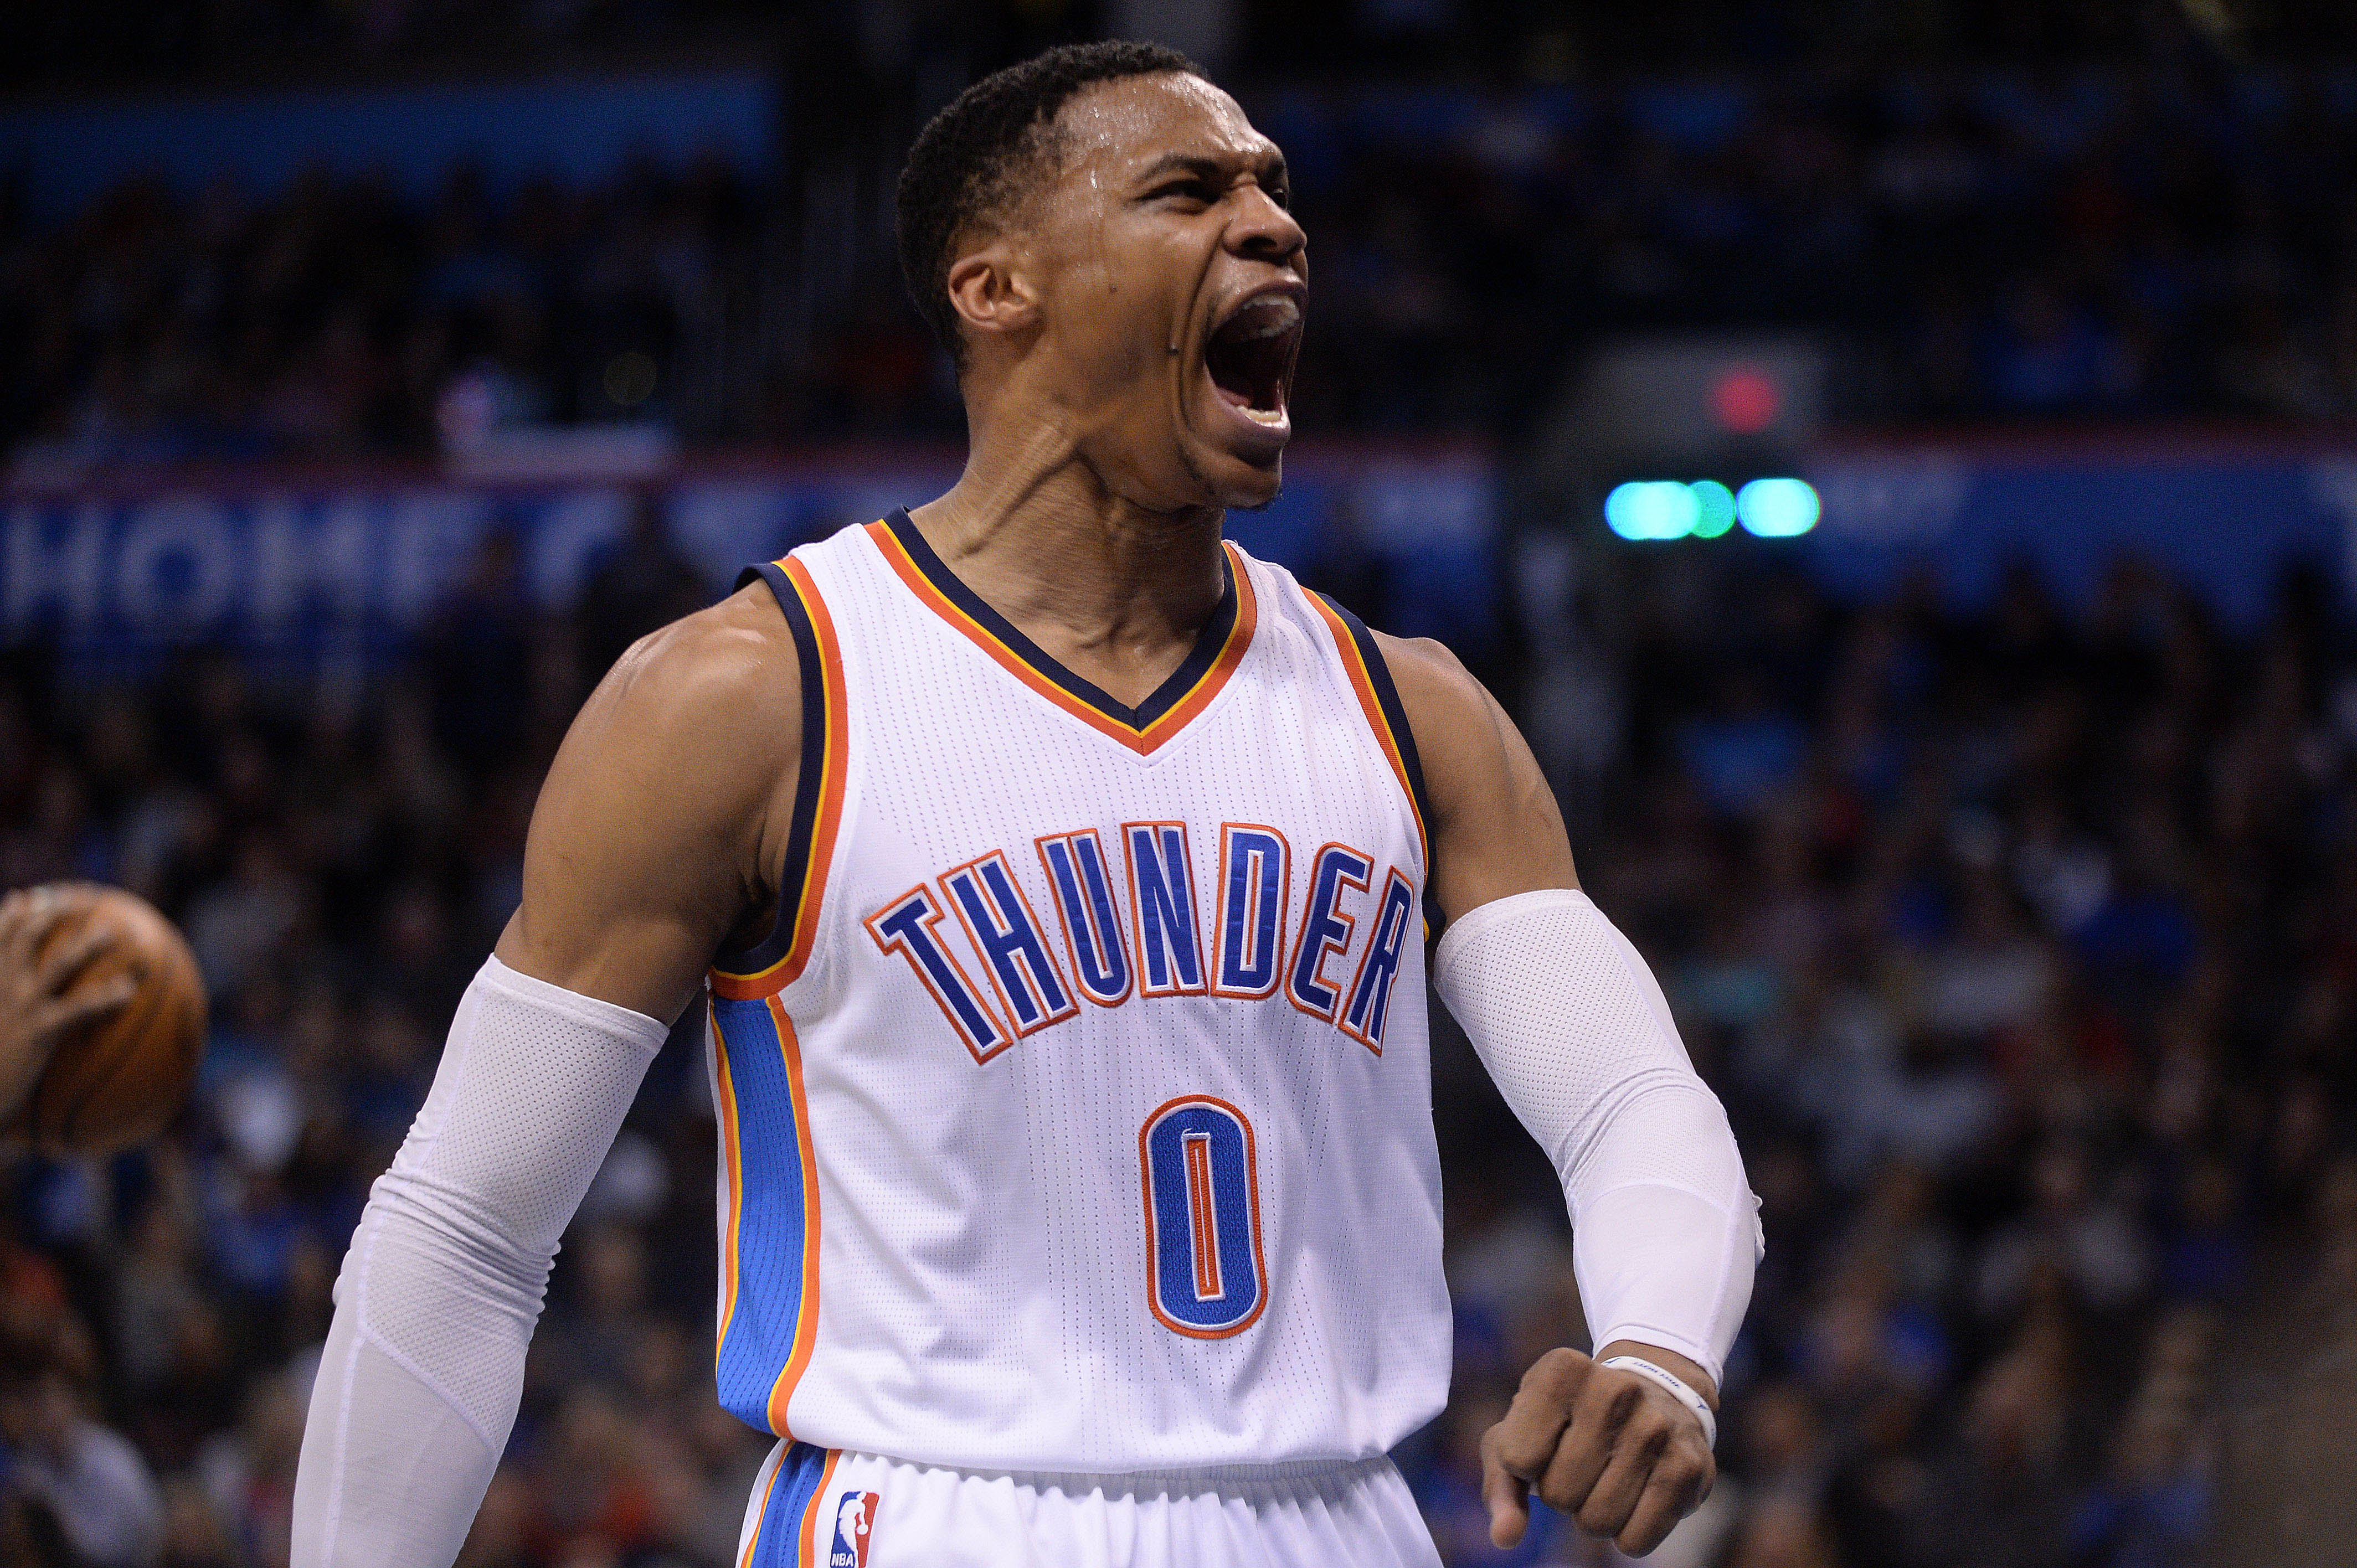 Feb 1, 2017; Oklahoma City, OK, USA; Oklahoma City Thunder guard Russell Westbrook (0) reacts after a play against the Chicago Bulls during the second quarter at Chesapeake Energy Arena. Mandatory Credit: Mark D. Smith-USA TODAY Sports